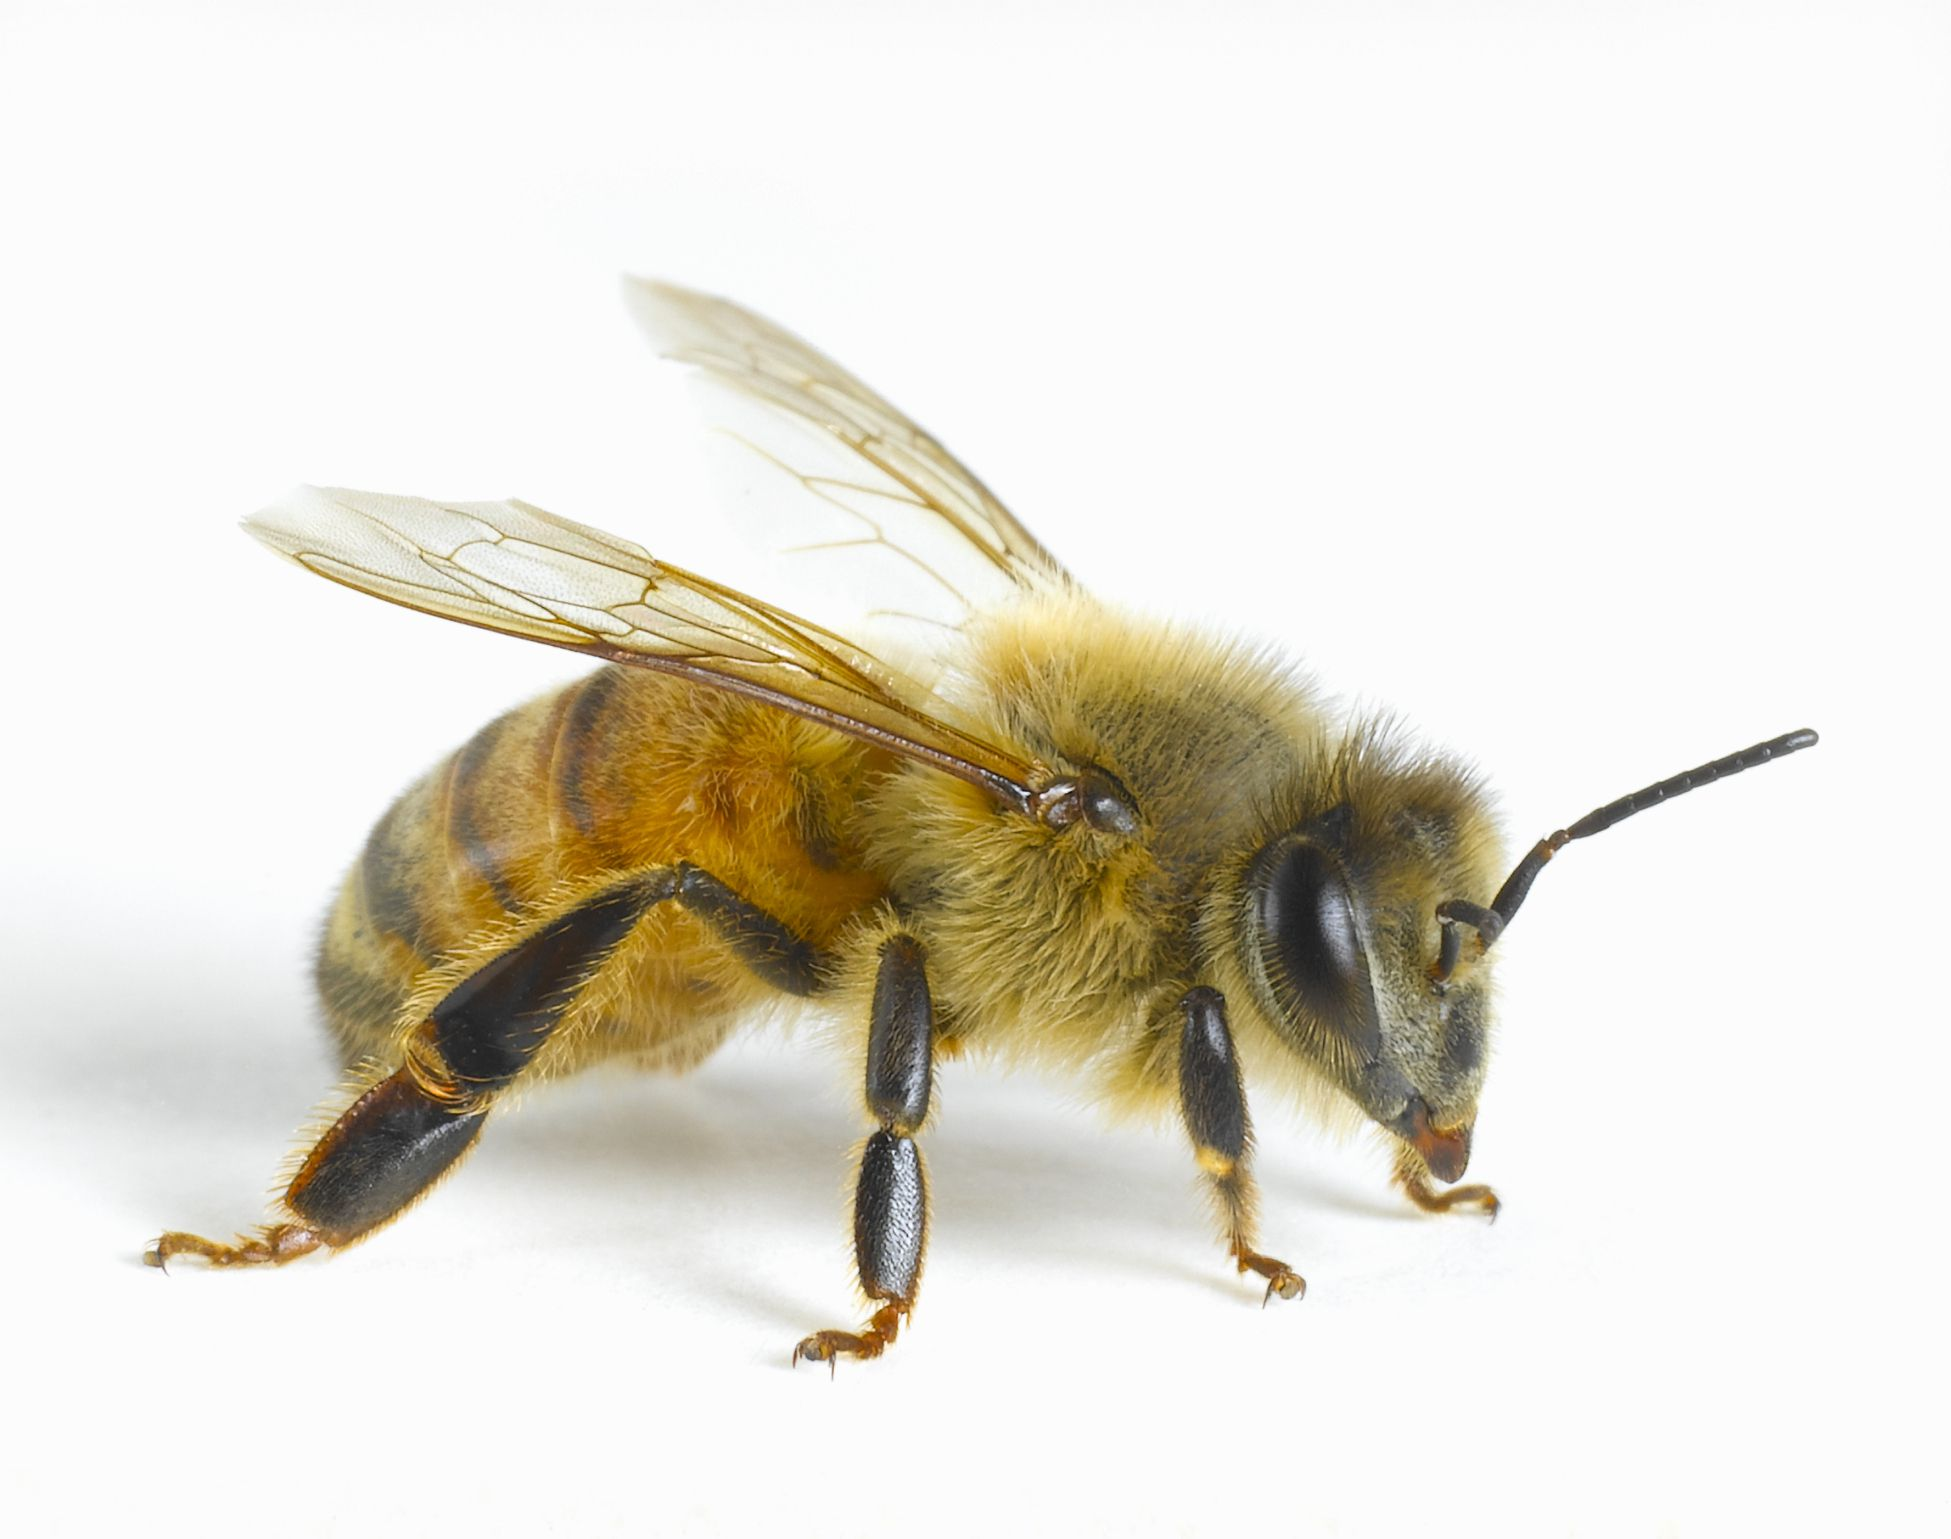 Habits And Traits Of Honey Bees